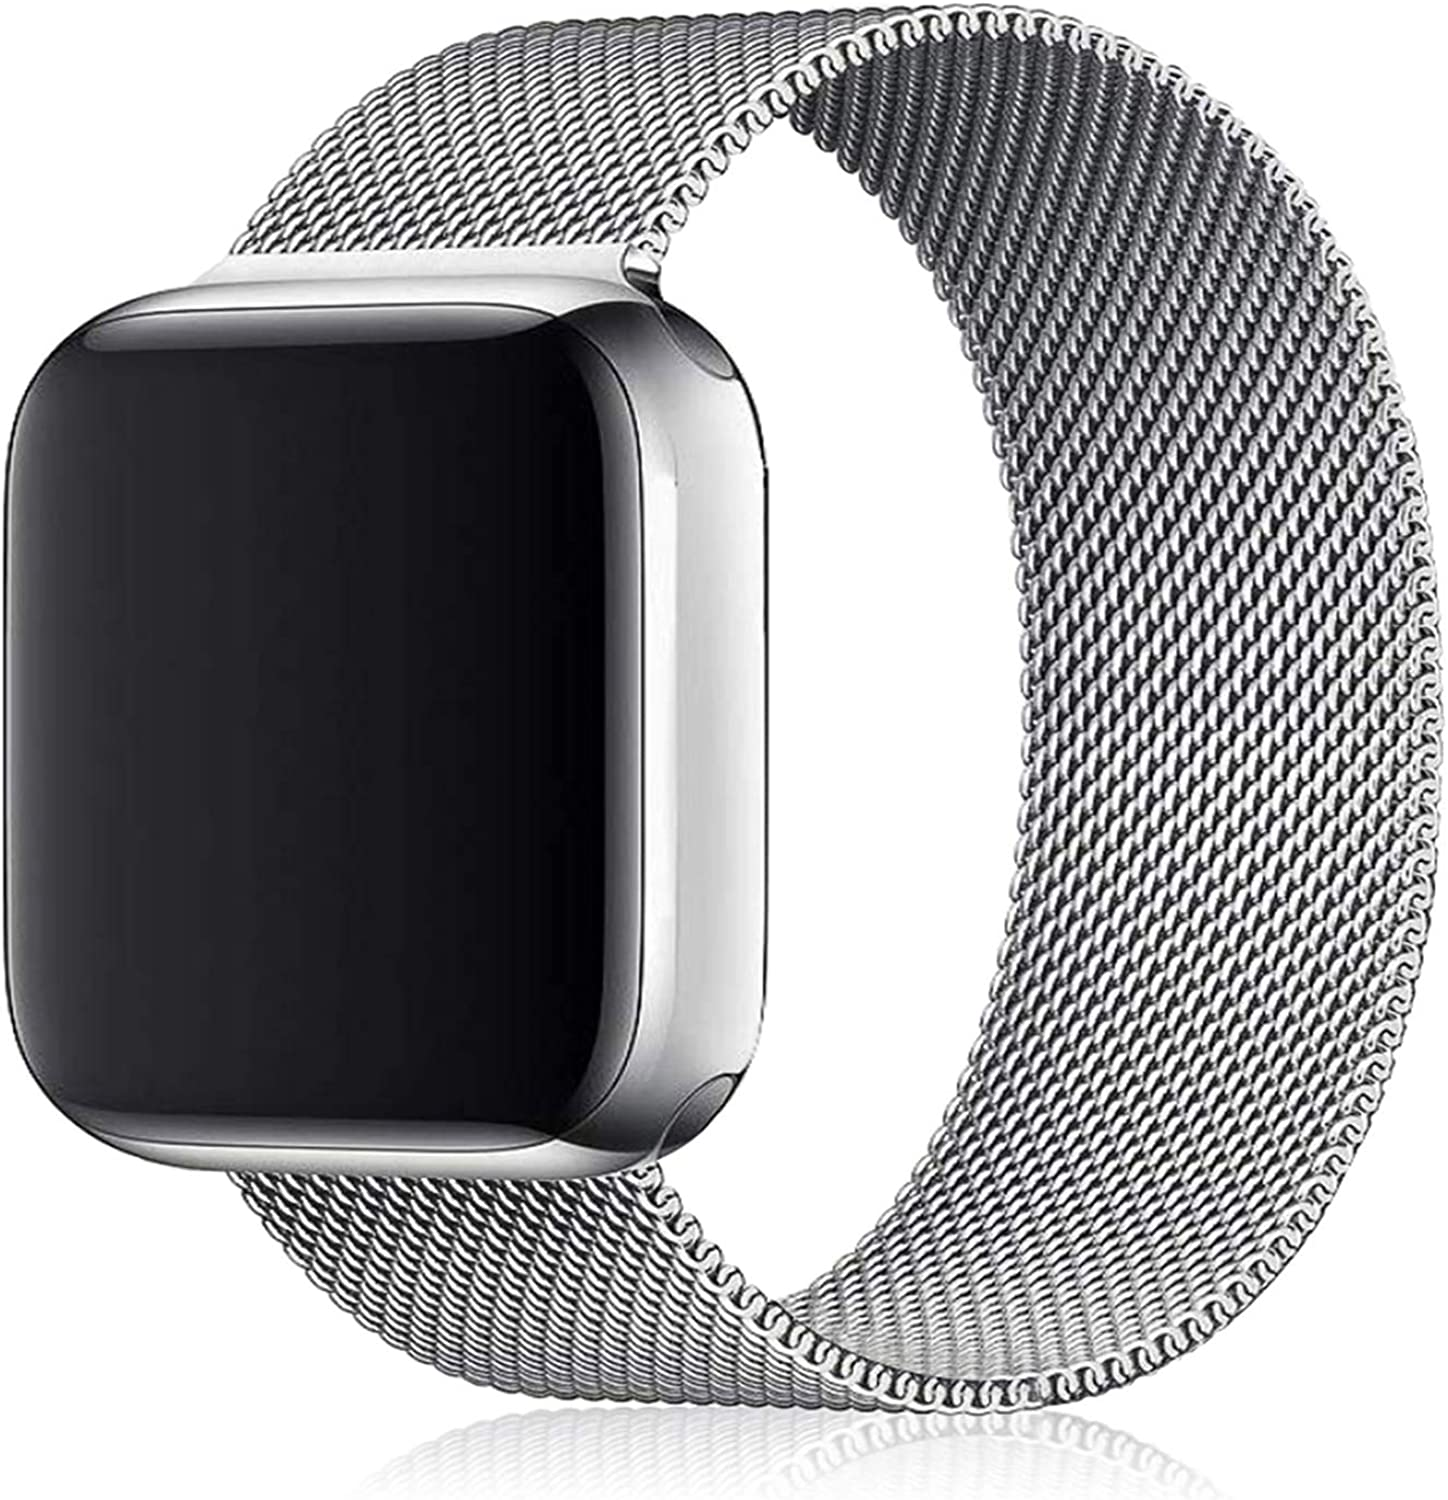 Maoyea Bands Compatible with Apple Watch 38mm 40mm 42mm 44mm with Ultra-Thin Clear TPU Film, Stainless Loop Wristband Adjustable Straps for iWatch Series 6/SE/5/4/3/2/1